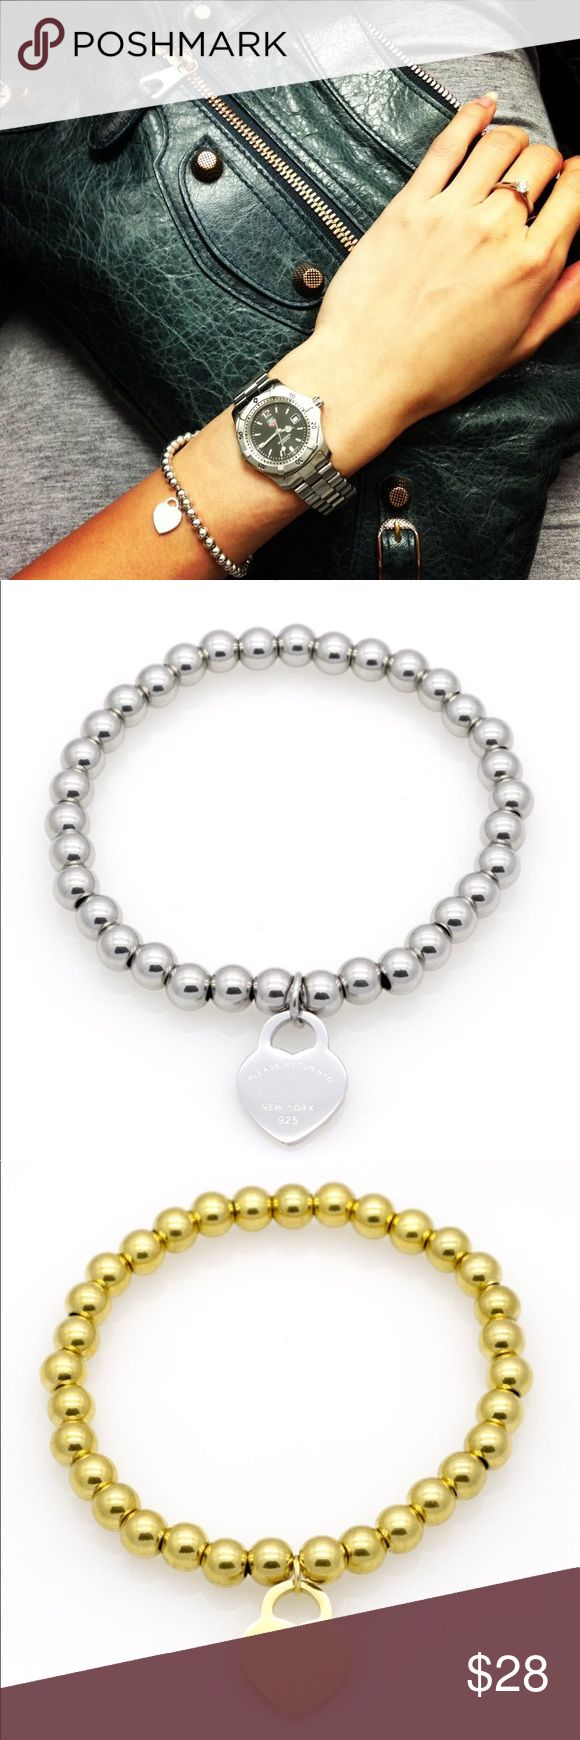 Tiffany Microfiche Heart Tag Bead Bracelet Designer Engraved Heart Bead Bracelet in silver & gold. Stretch for comfortable fit.   Inspired by the iconic key ring first introduced in 1969, the Return to collection is a classic reinvented. An elegant bead bracelet and engraved tag combine to create a simple and timeless design.  Lead, Nickel, & Cadmium free.  *NOTE: Remember to remove jewelry before direct contact with any water, lotions, and/or perfumes. It keeps the integrity of the jewelry…